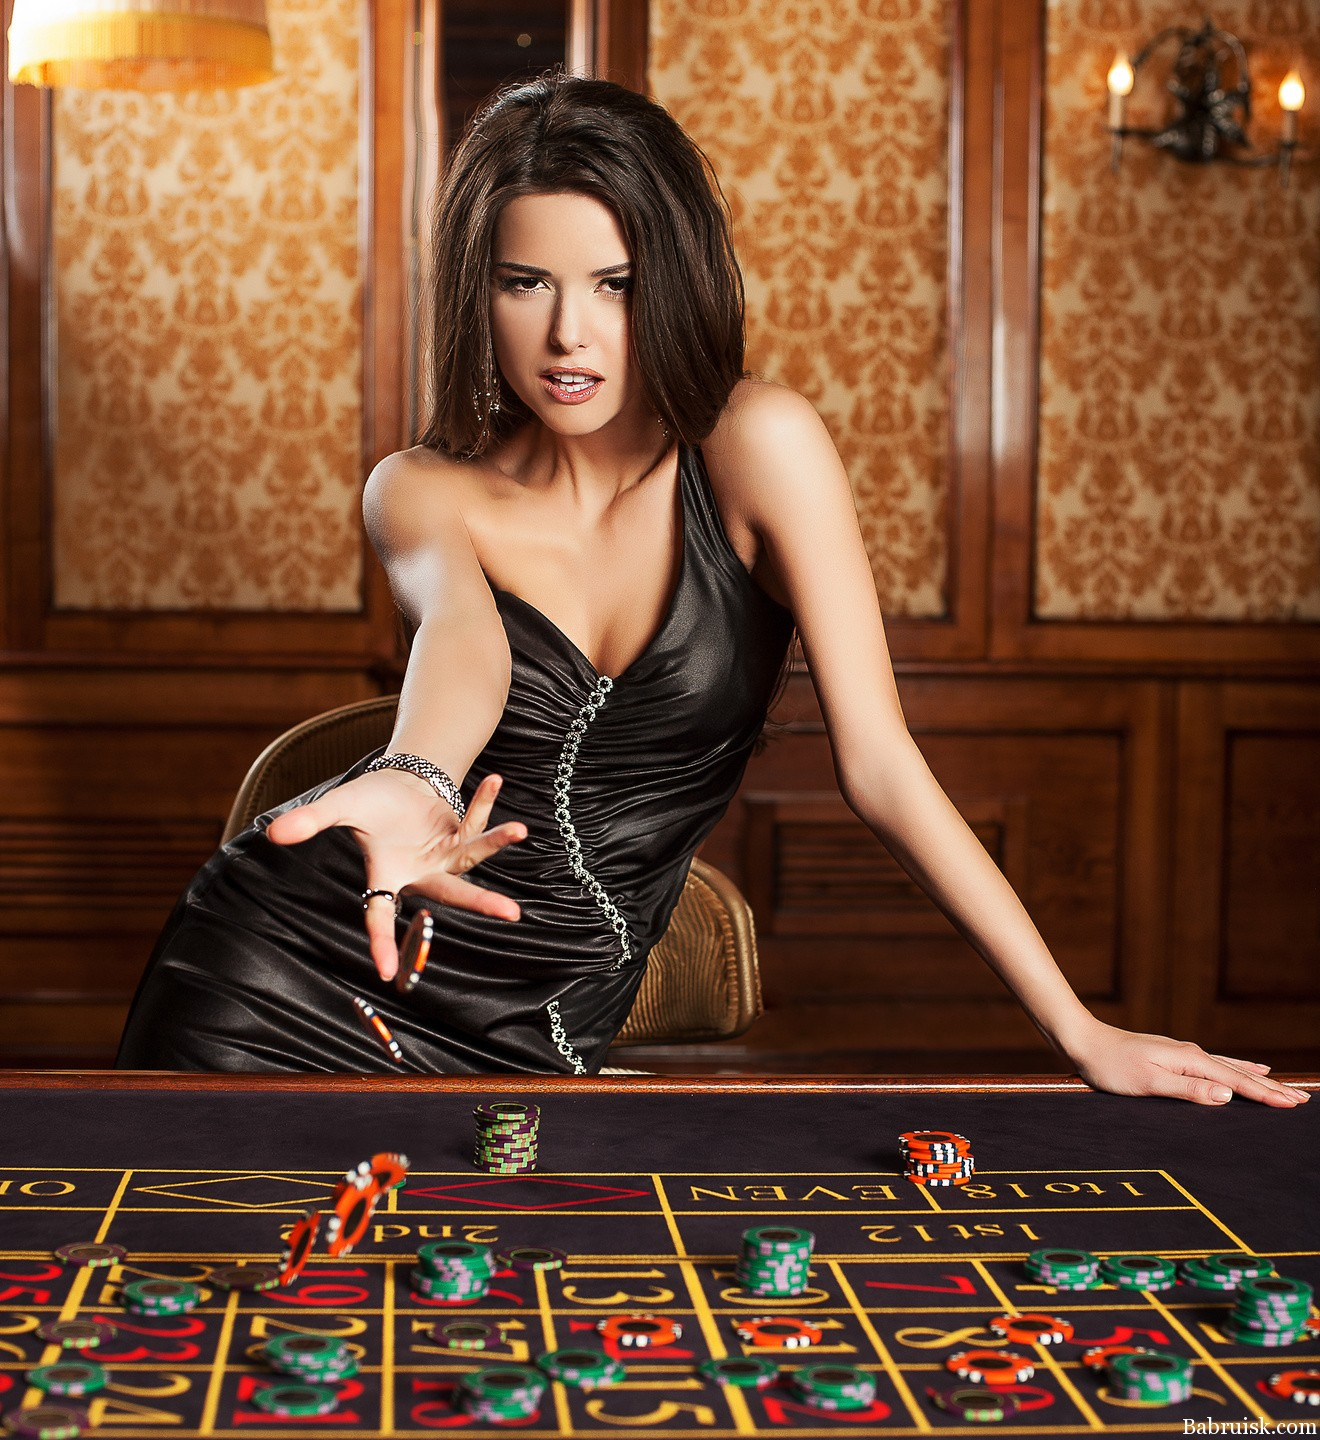 Poker girl pictures player porn galleries